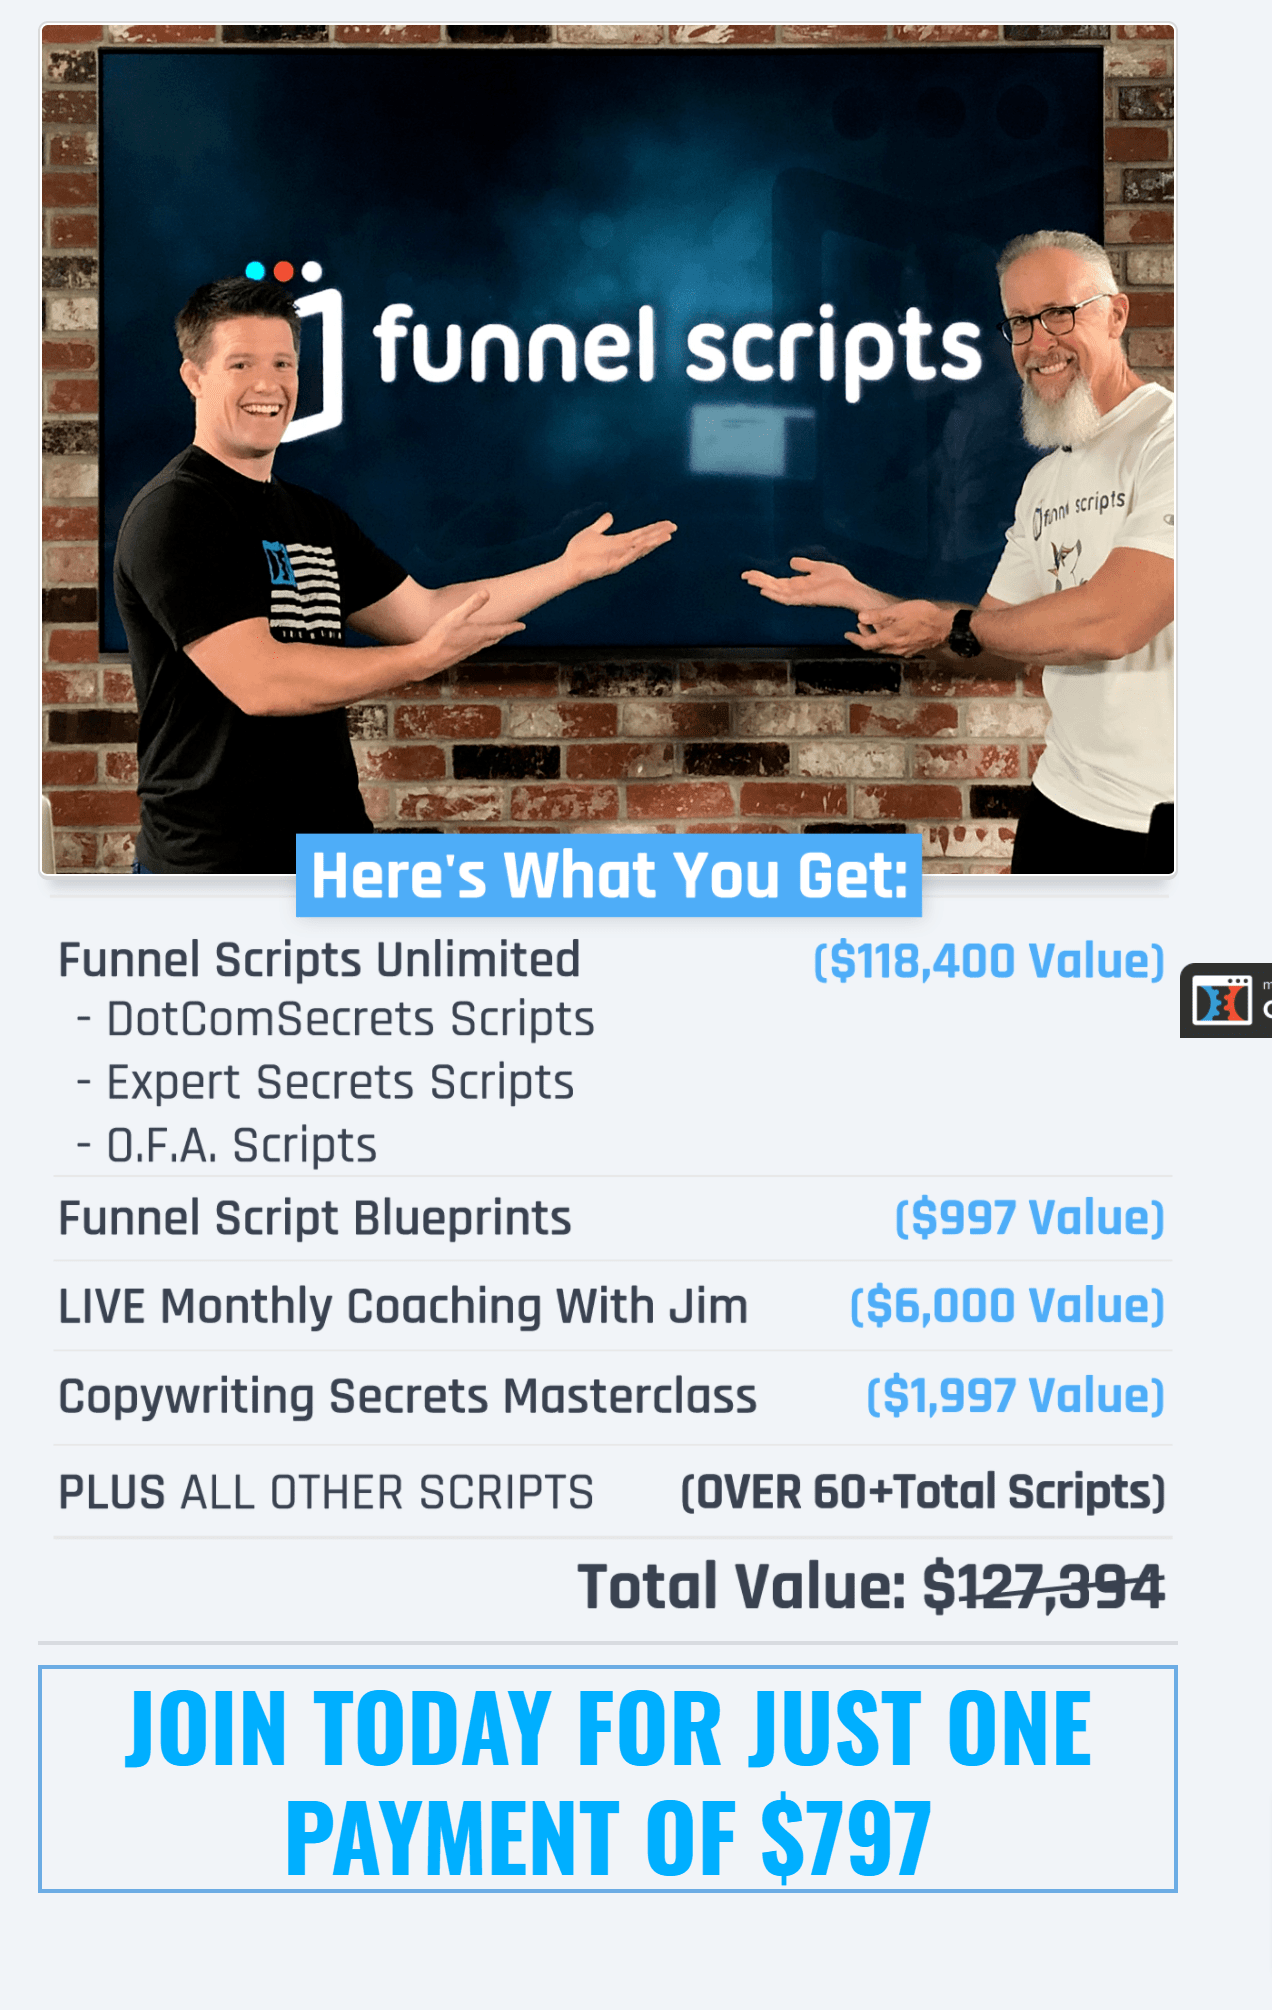 Funnel Scripts Unlimited